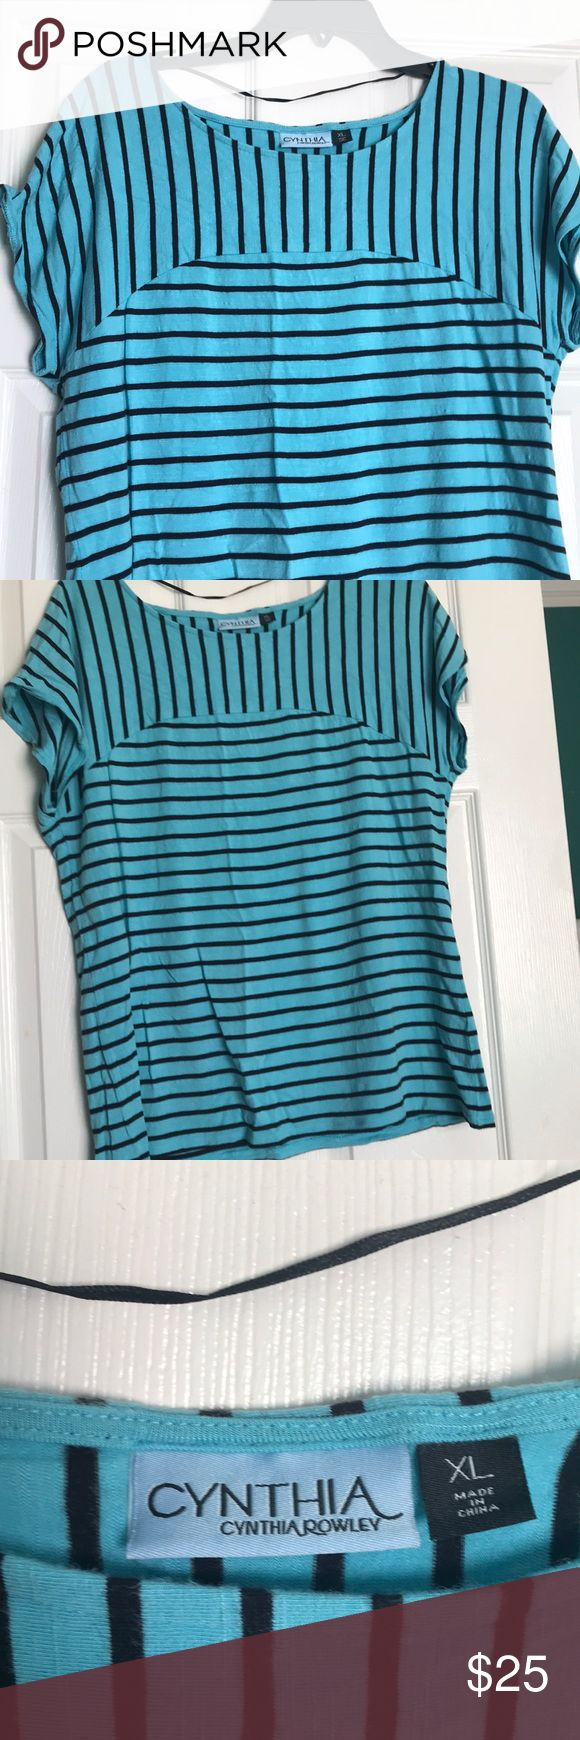 Blue with black stripes short sleeve top, XL Fantastic top!   Versatile piece that pairs well with shorts or can be worn with skirt or pants for the office! Cynthia Rowley Tops